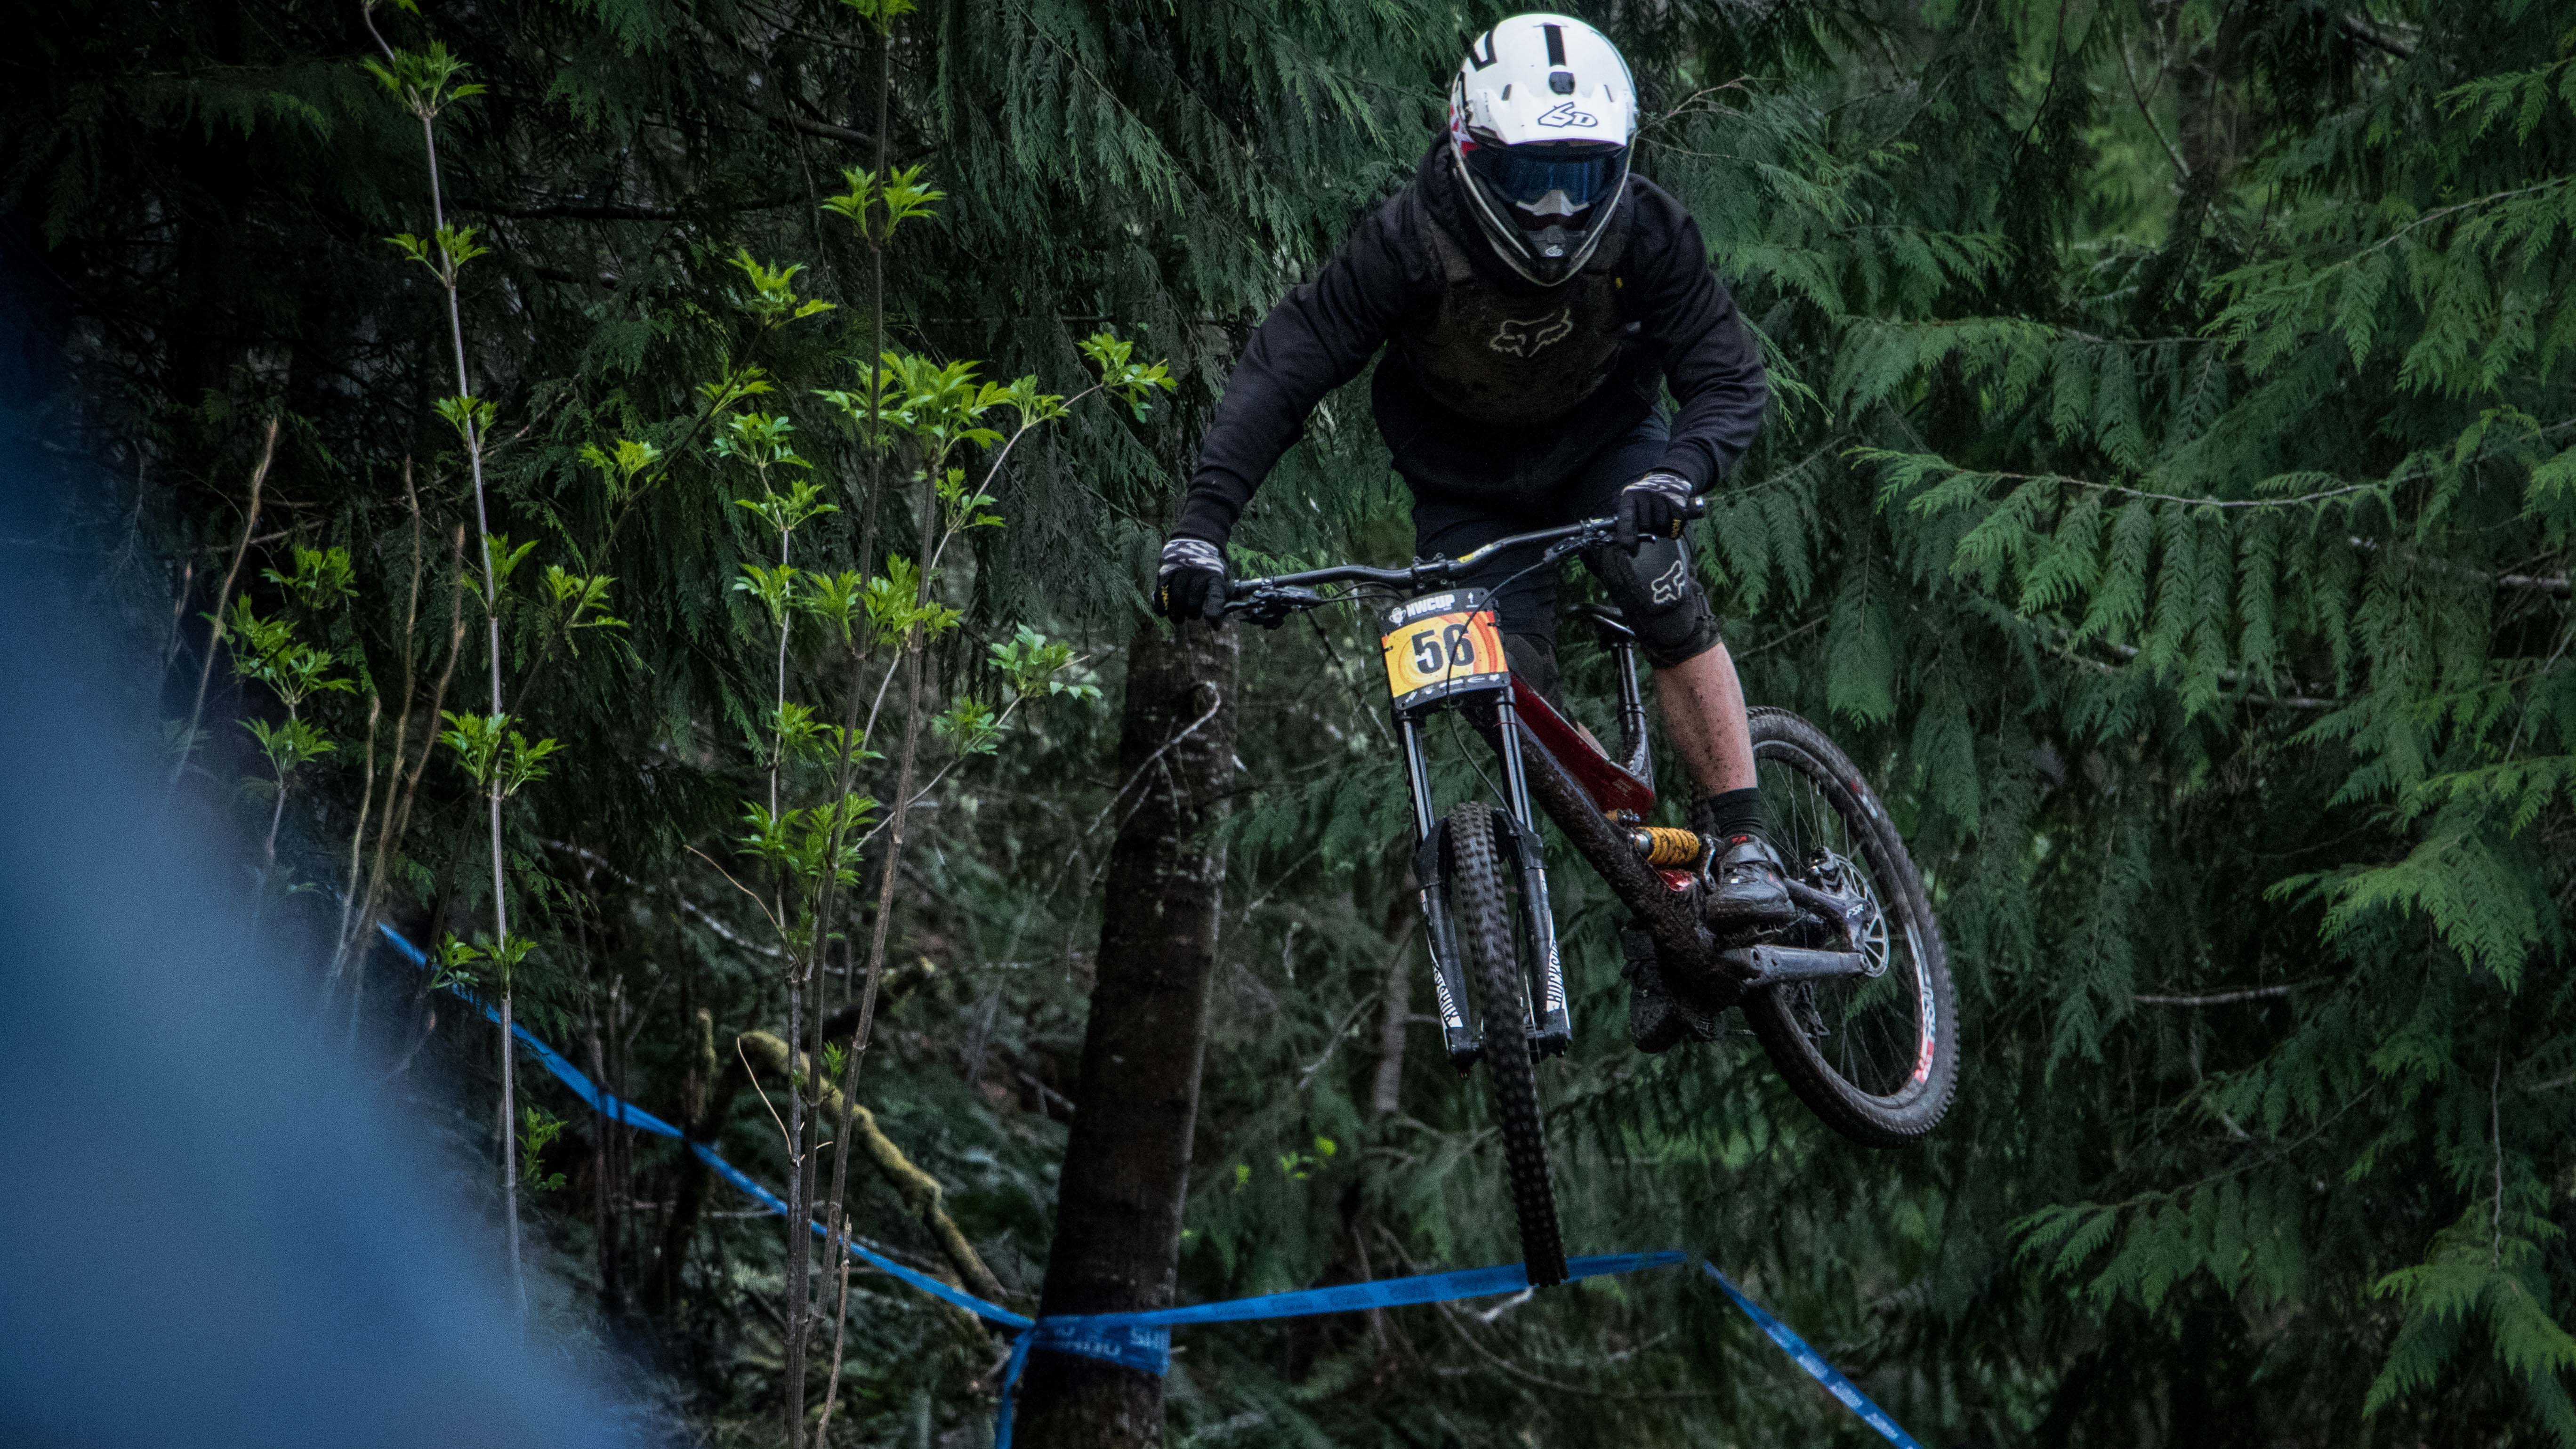 aafdfbfec3f Video: Rooted DH Brings the Privateer Power to Port Angeles